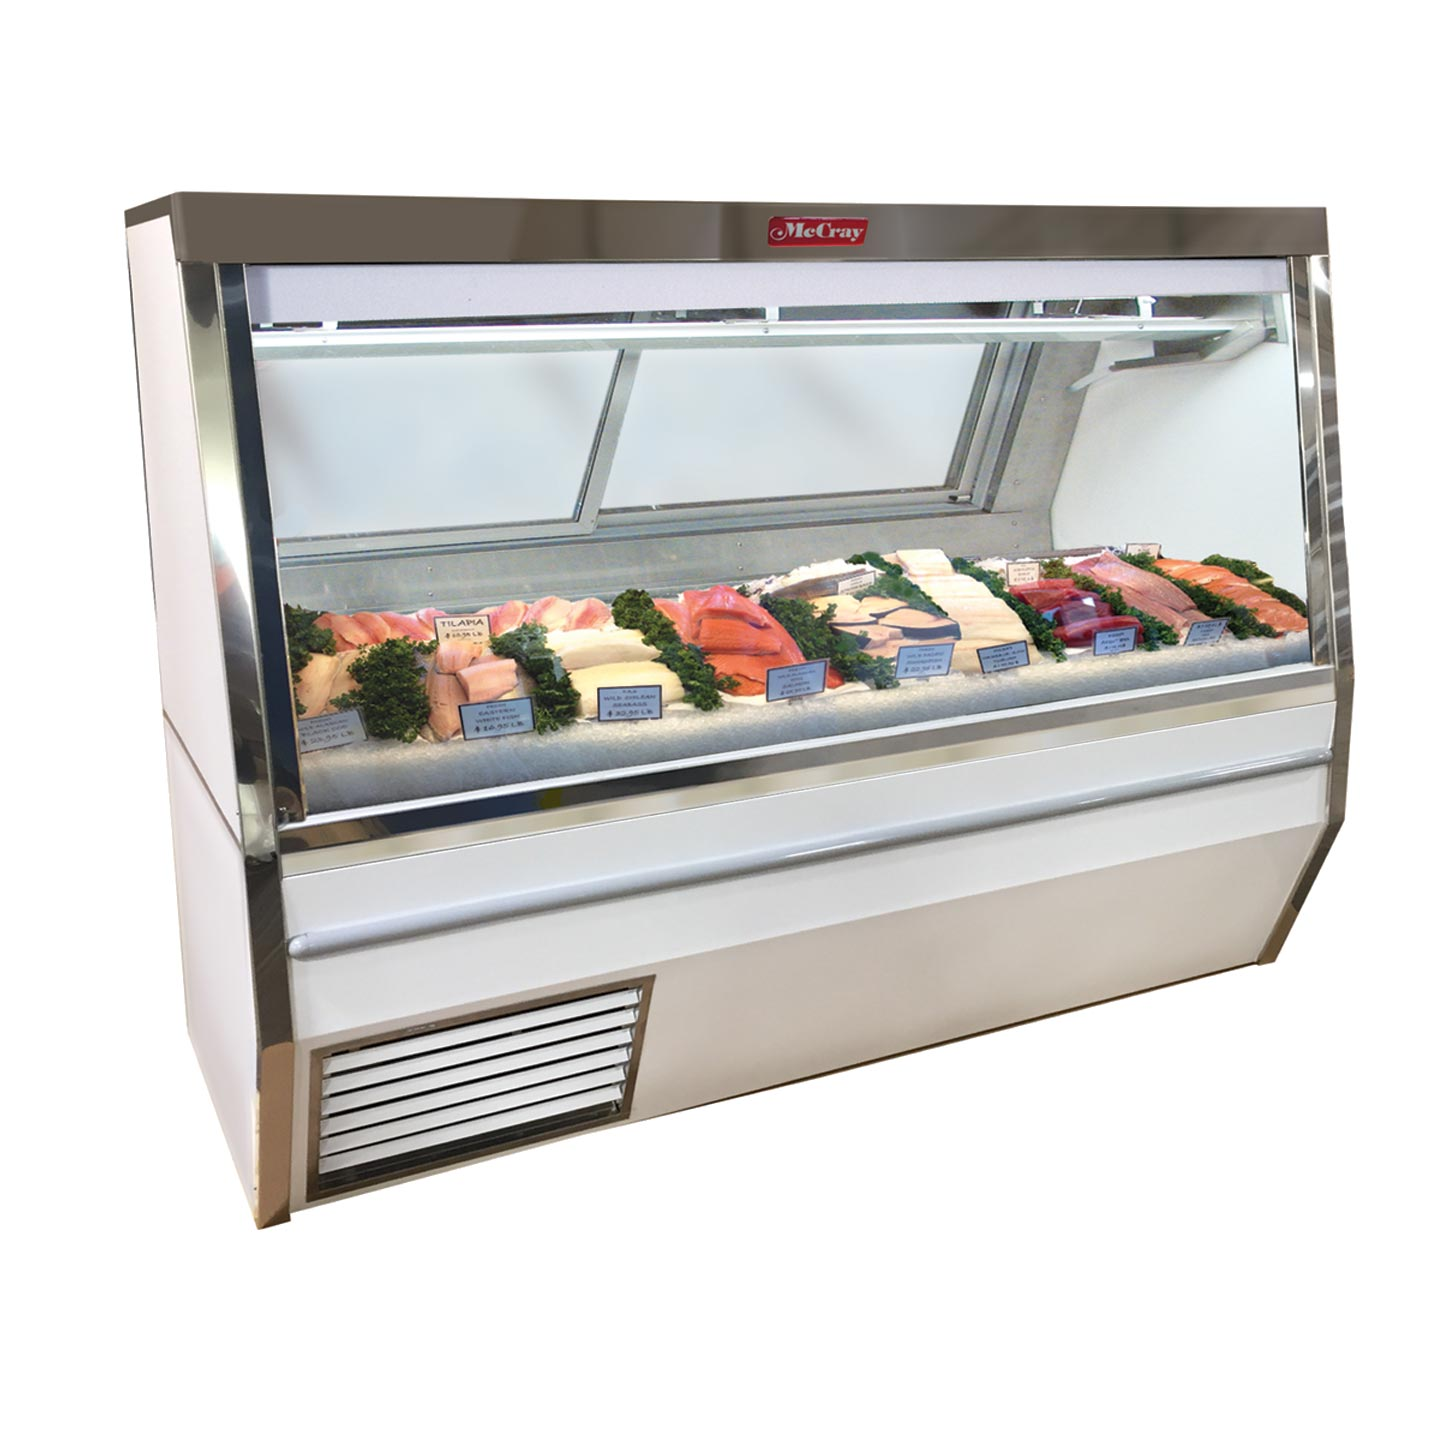 Howard-McCray R-CFS34N-8-S-LED display case, deli seafood / poultry